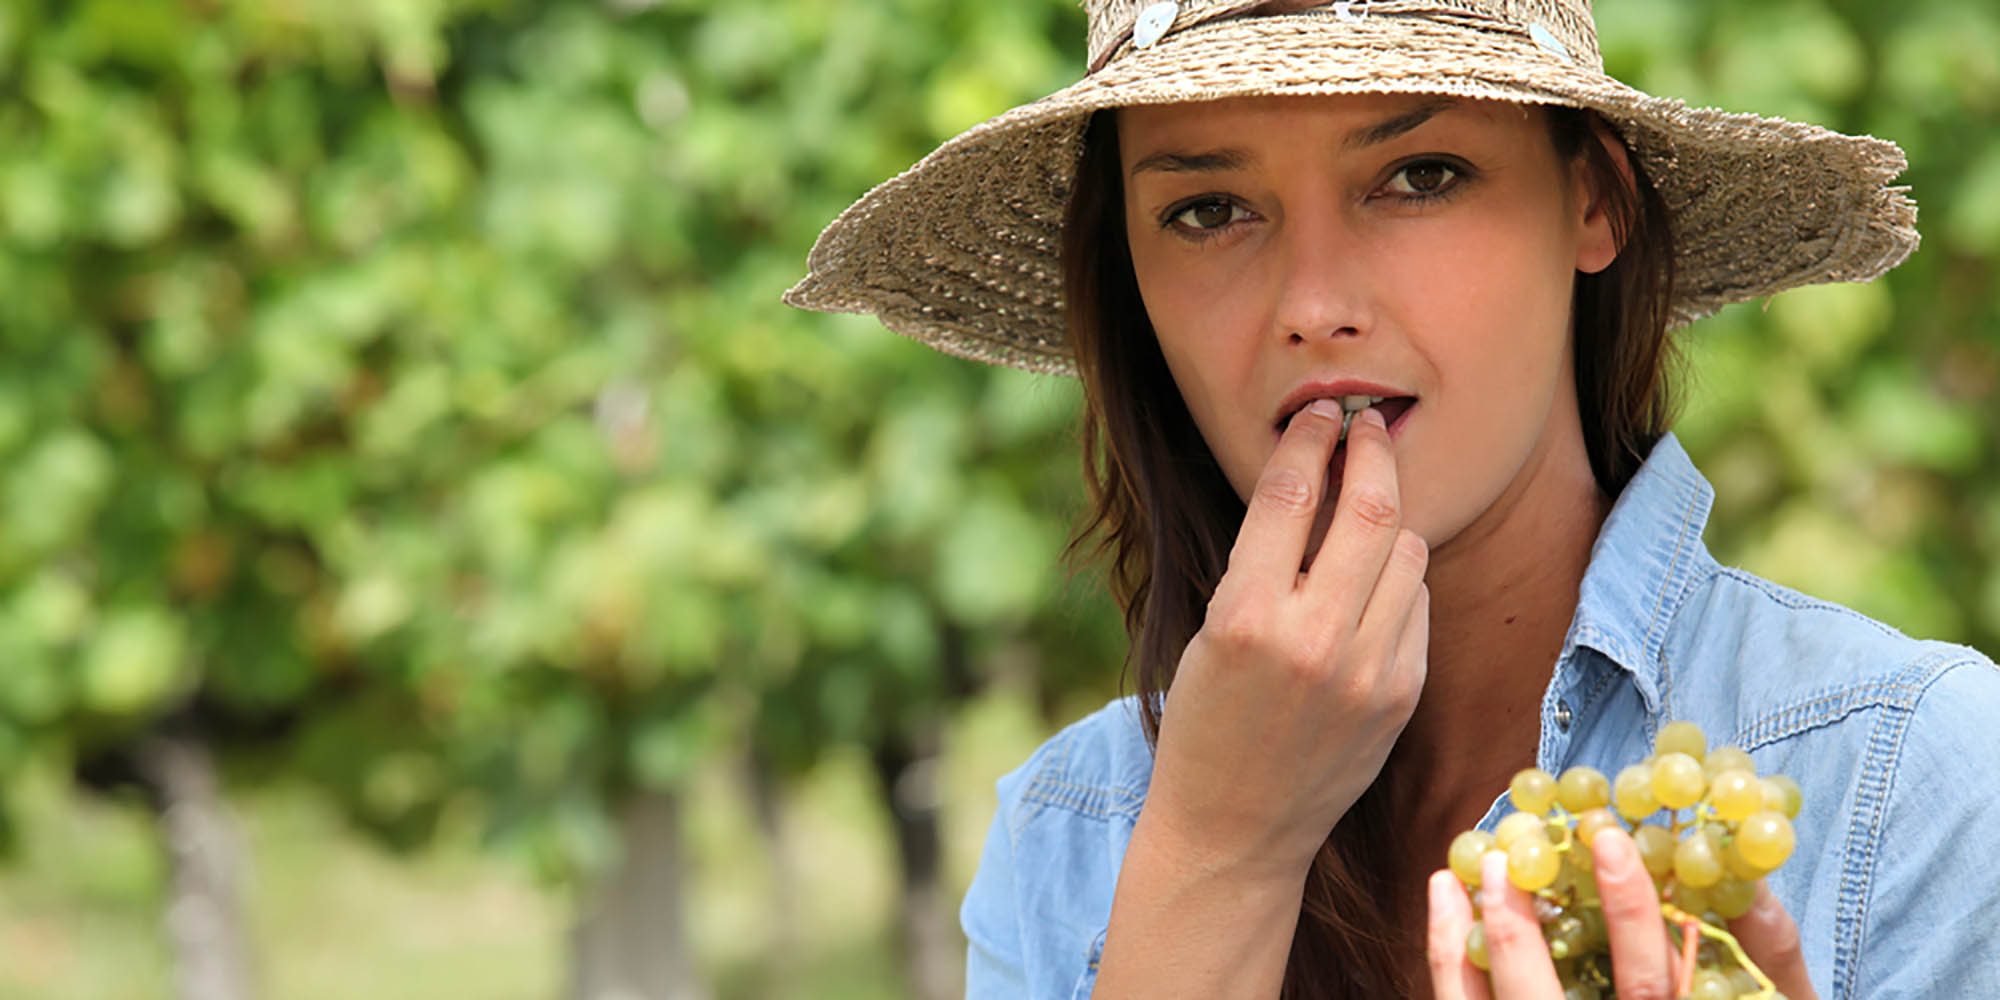 10 Healthy Foods That Are Also Great for the Skin